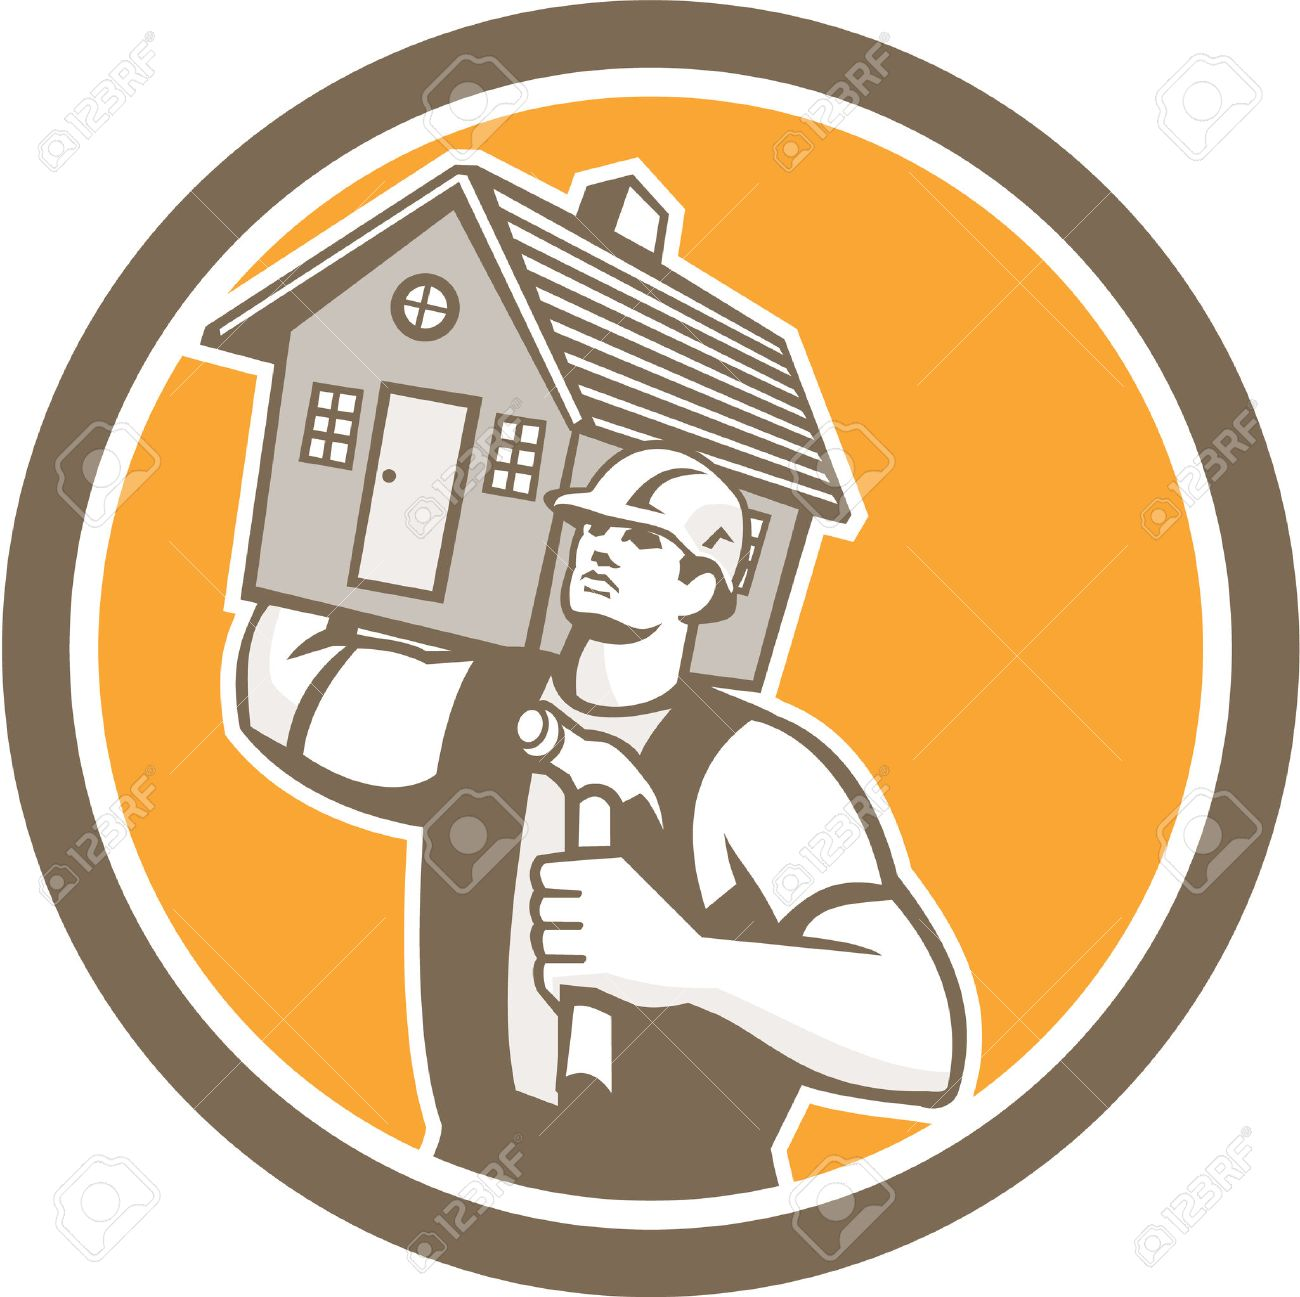 Illustration of a carpenter builder holding hammer and carrying house on shoulder set inside circle on isolated background done in retro style. - 30392734